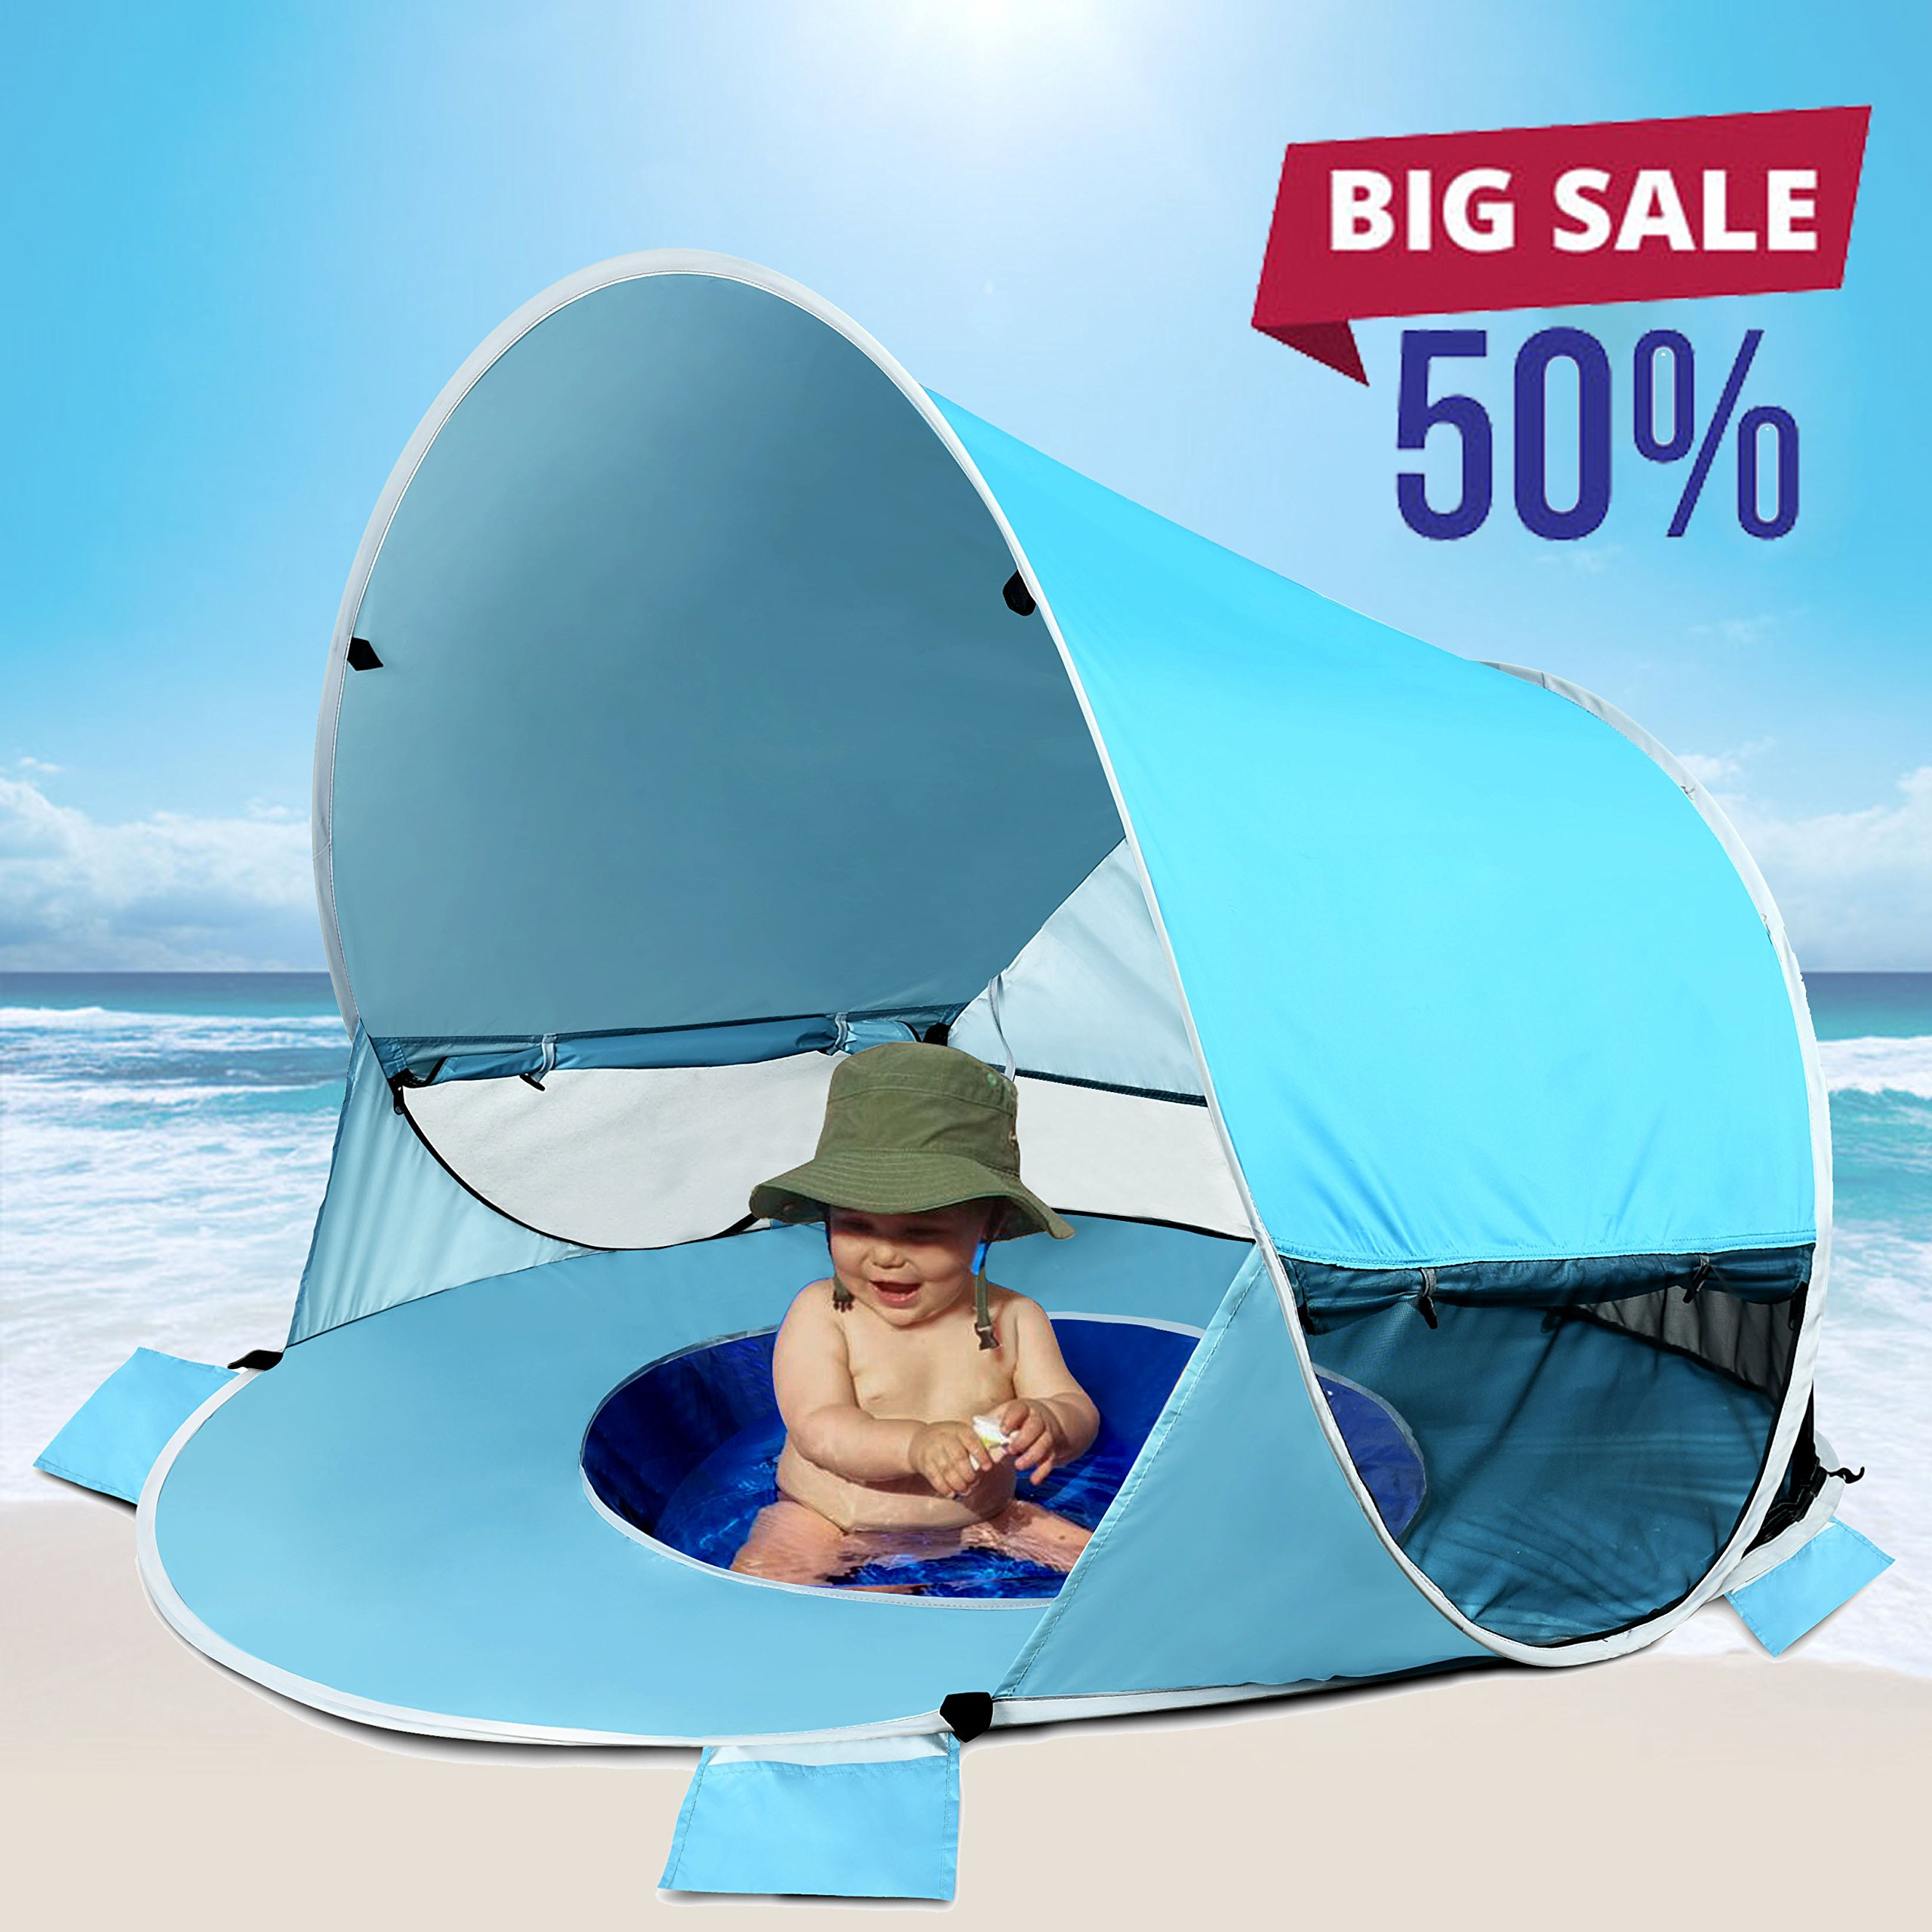 [2018 UPGRADED]Baby Beach Tent-Pop Up Beach Tent With Pool Shade Cabana Portable UV Sun Shelter